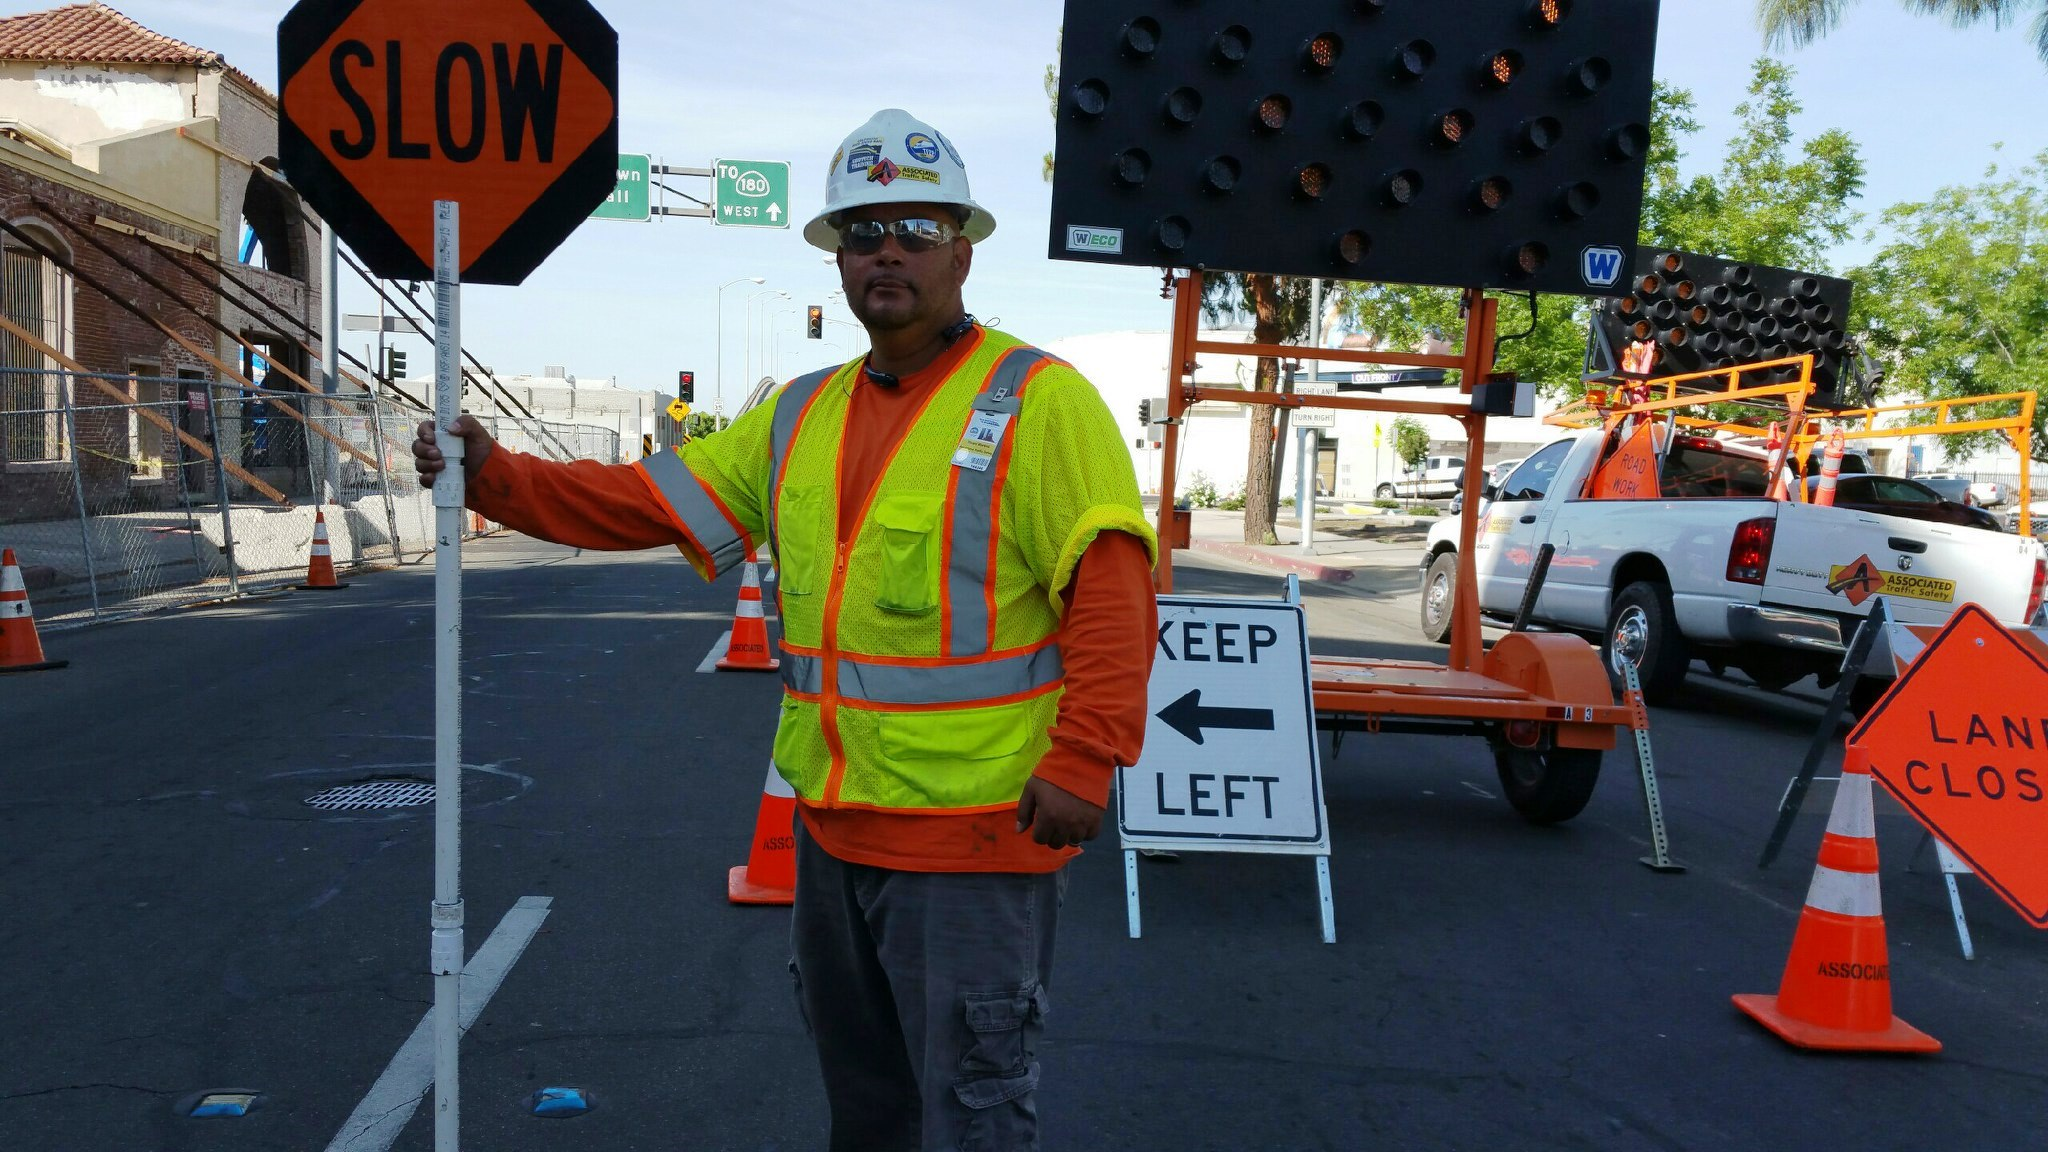 Pre-apprenticeship training landed Yovani Moreno landed a job on the High-Speed Rail project